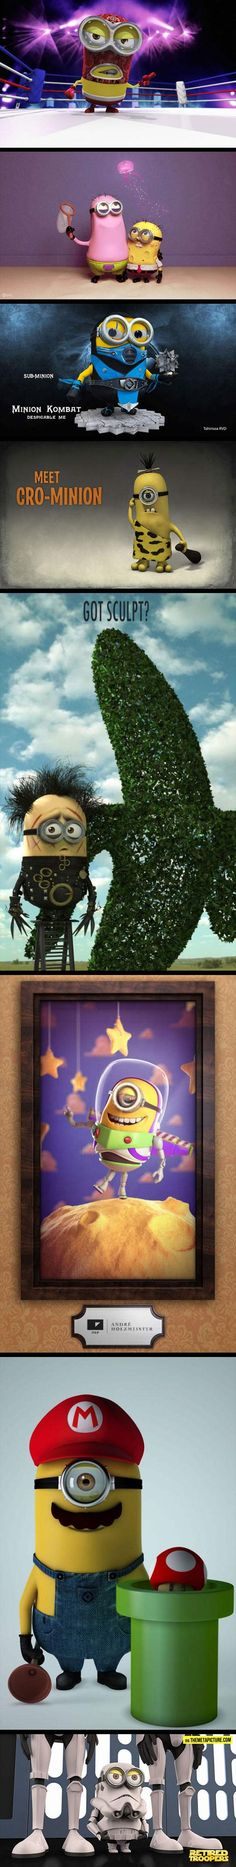 Funny pictures about For Minion lovers. Oh, and cool pics about For Minion lovers. Also, For Minion lovers. Cute Minions, Minions Despicable Me, Charlie Chaplin, Minion Characters, The Funny, Nerdy, Funny Pictures, Funny Images, Geek Stuff